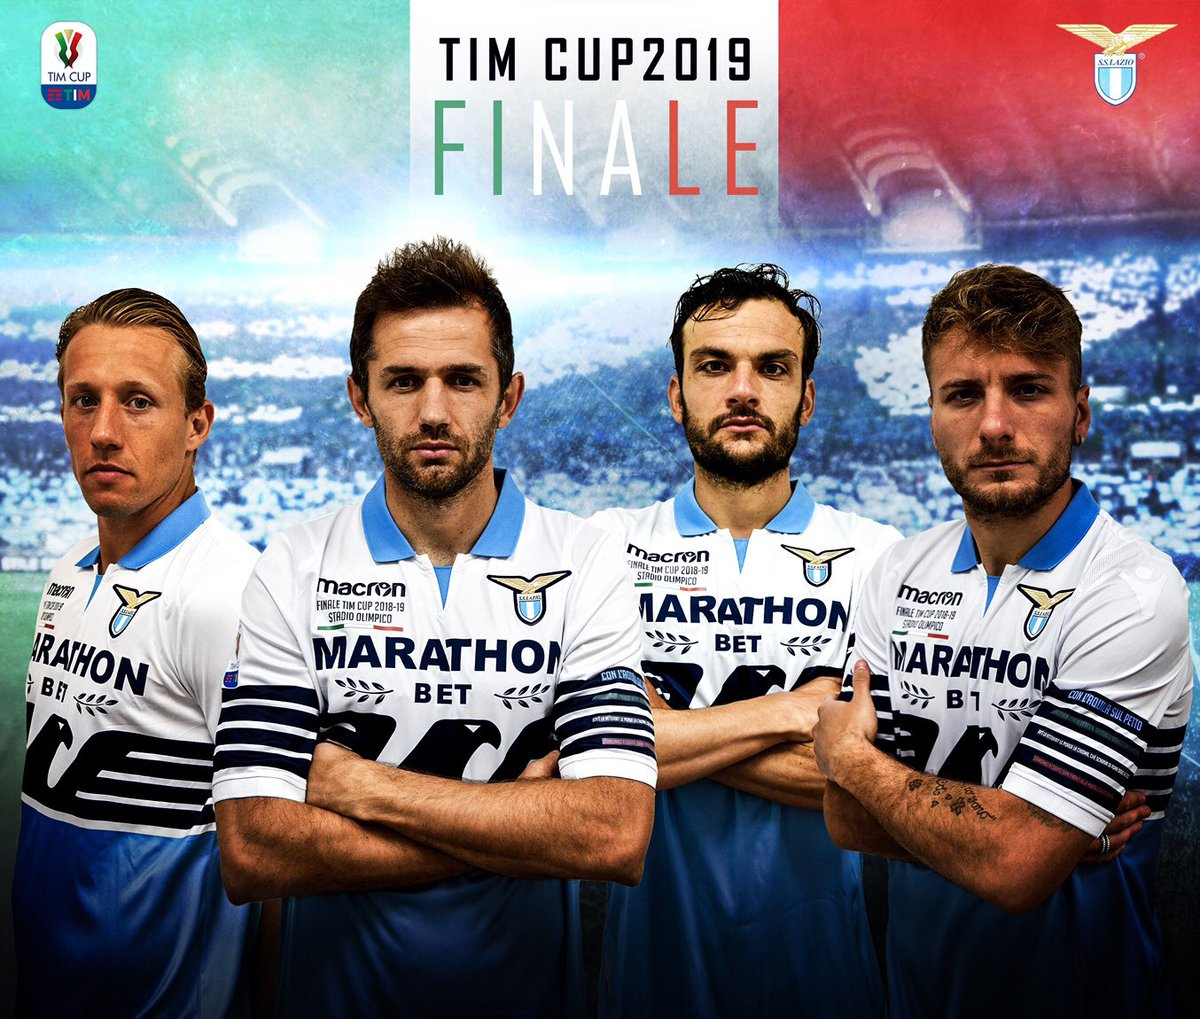 92eb50ef6 Italian club S.S. Lazio has released a special jersey for the 2018-19 Coppa  Italia final against Atalanta. It is made by Macron and based on the  regular ...